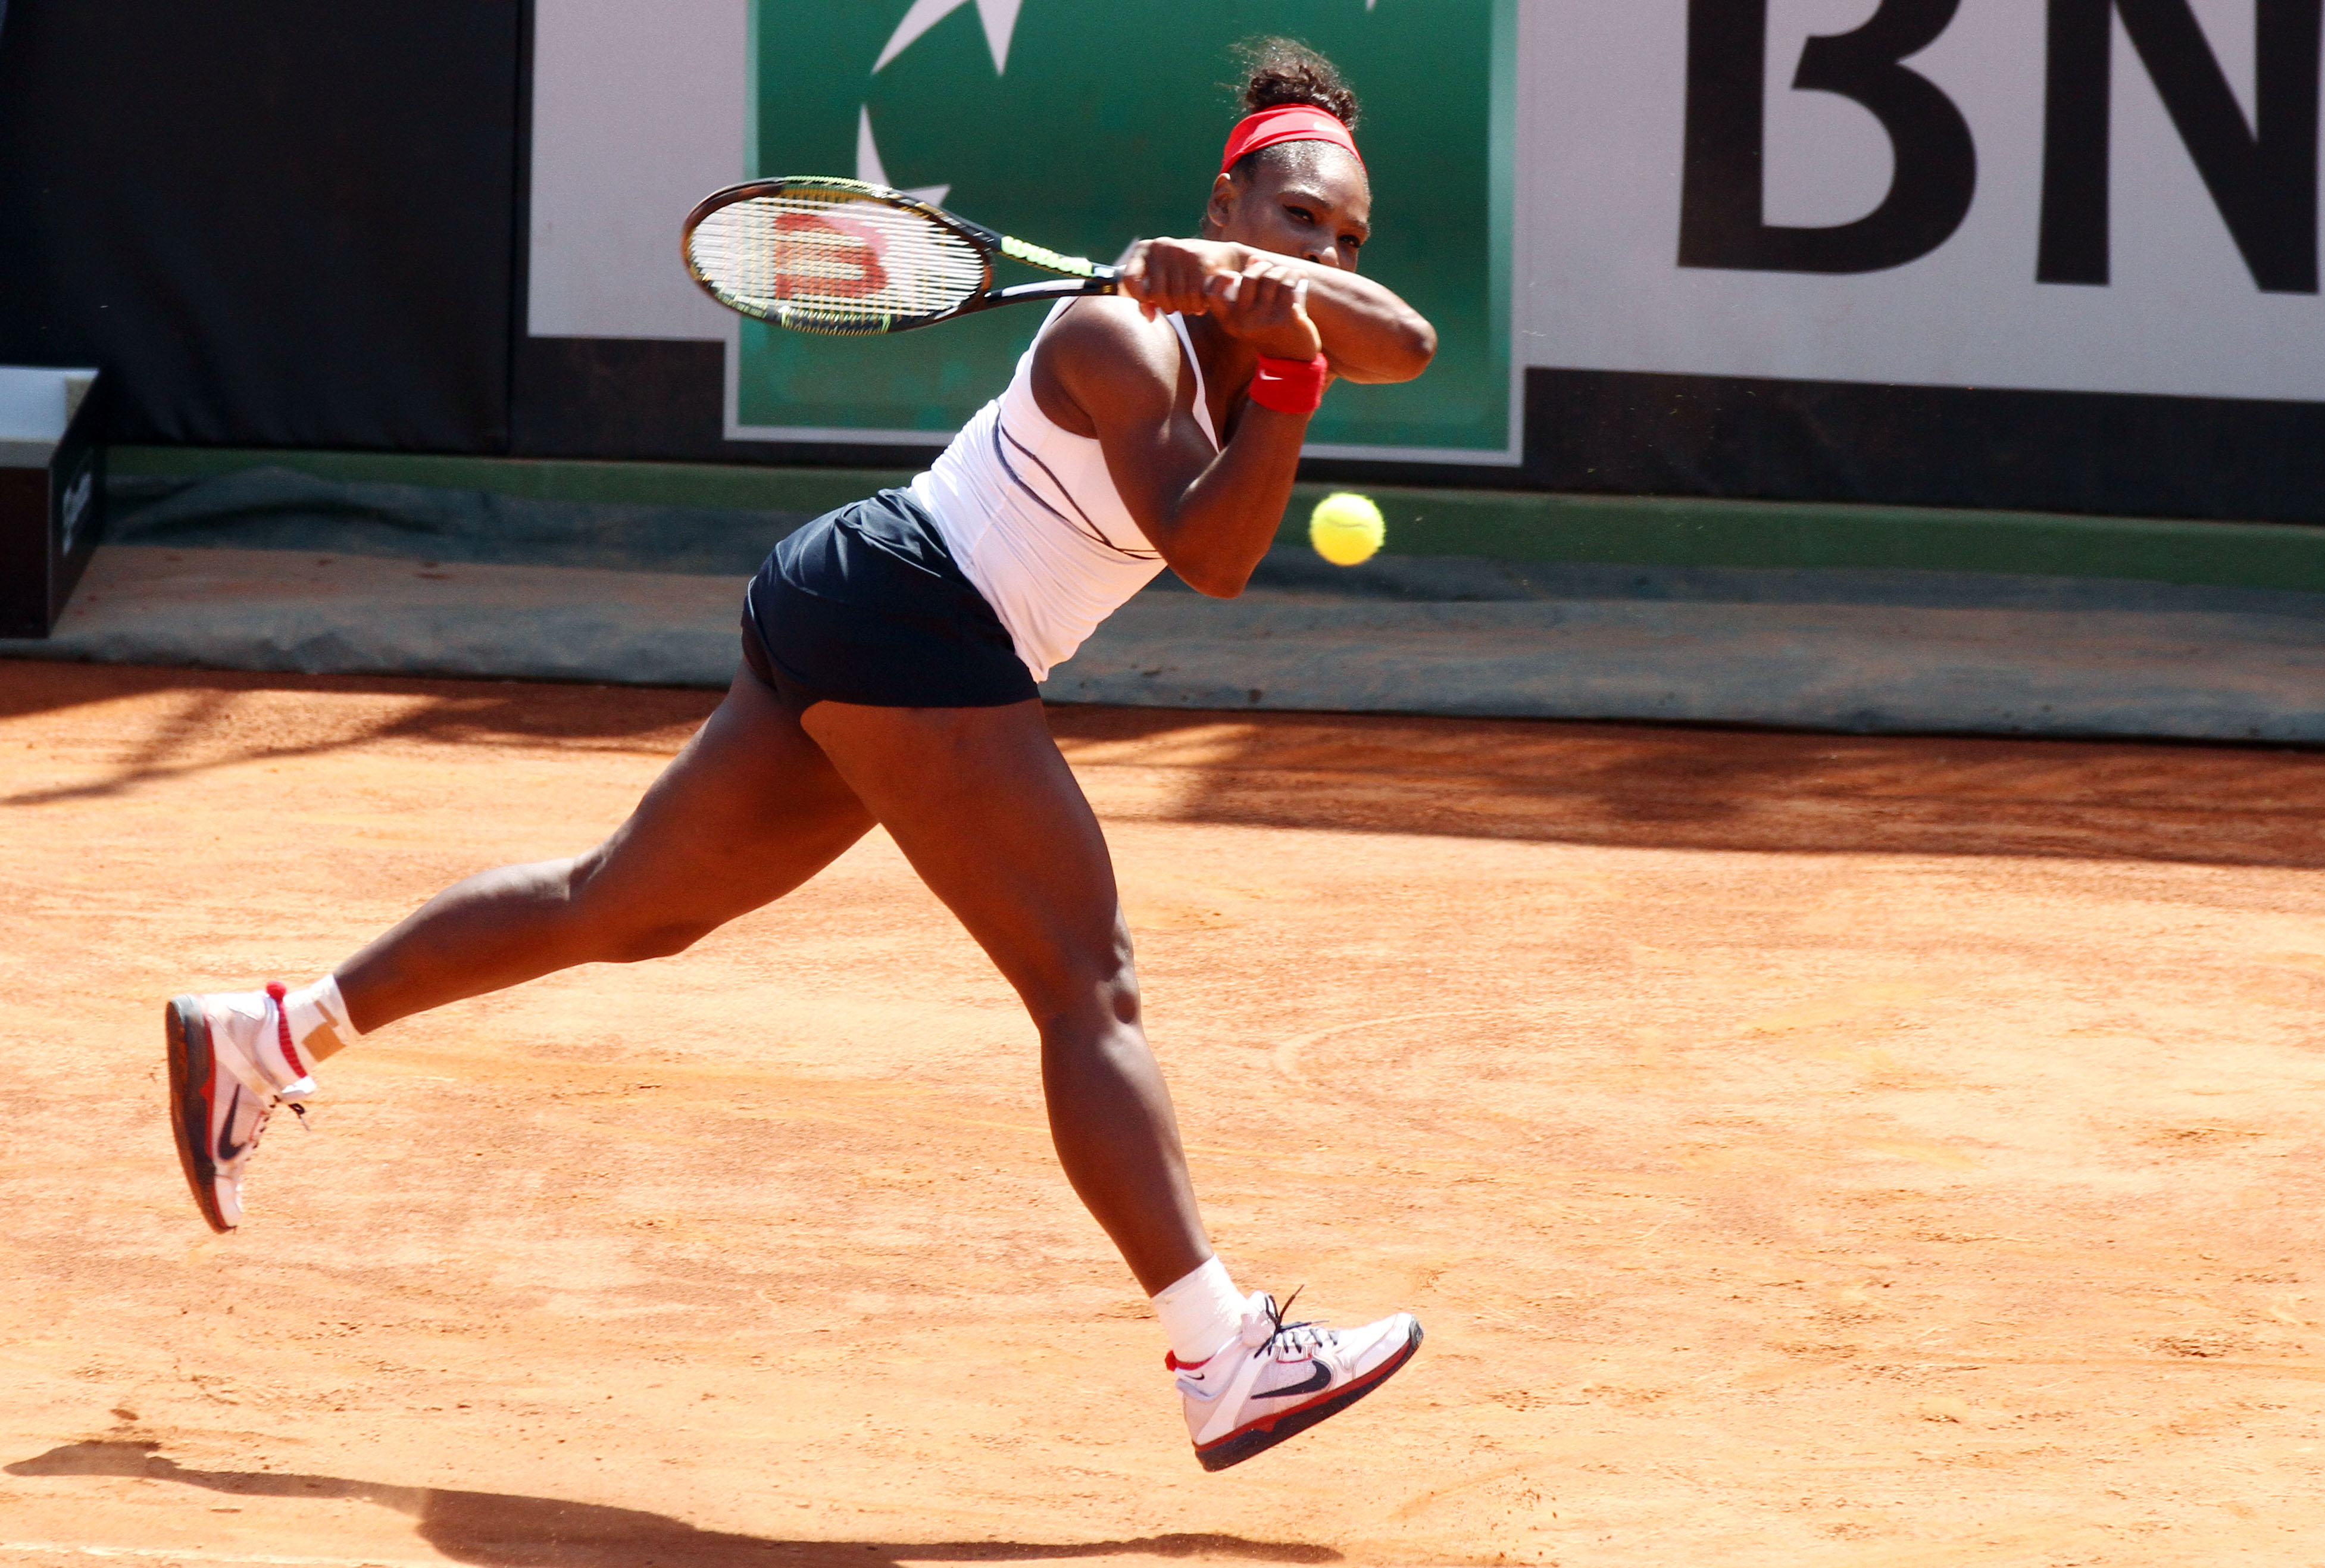 Serena Williams holds off Giorgi but Italy-US tied at 1-1